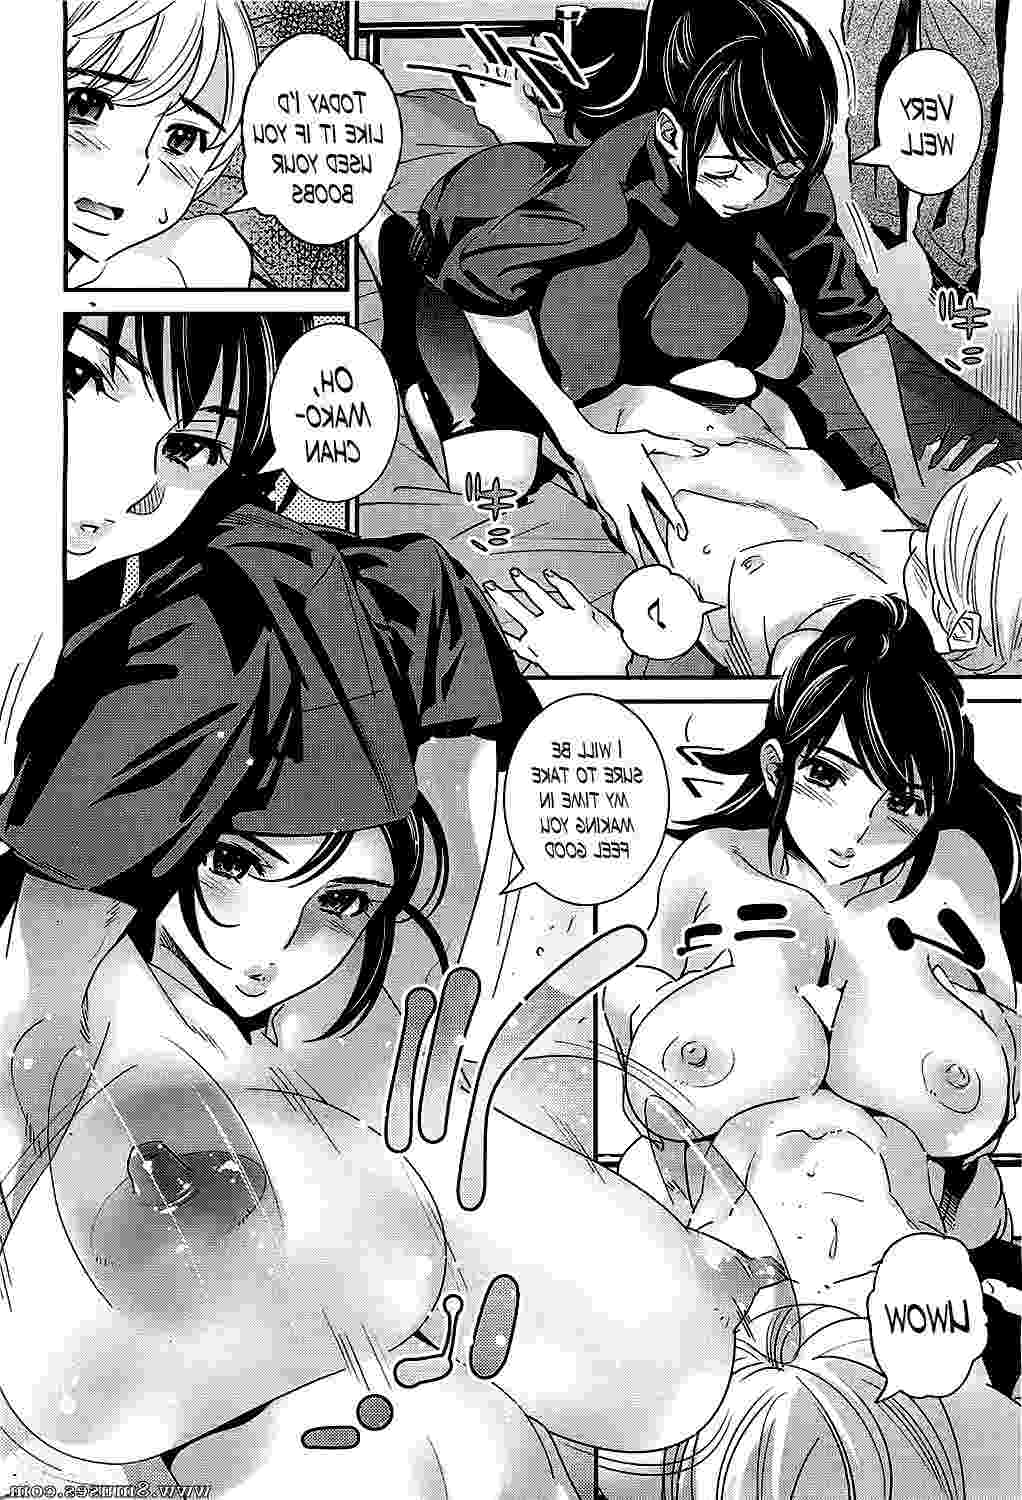 Hentai-and-Manga-English/Katsura-Yoshihiro/The-Ghost-Behind-My-Back The_Ghost_Behind_My_Back__8muses_-_Sex_and_Porn_Comics_29.jpg